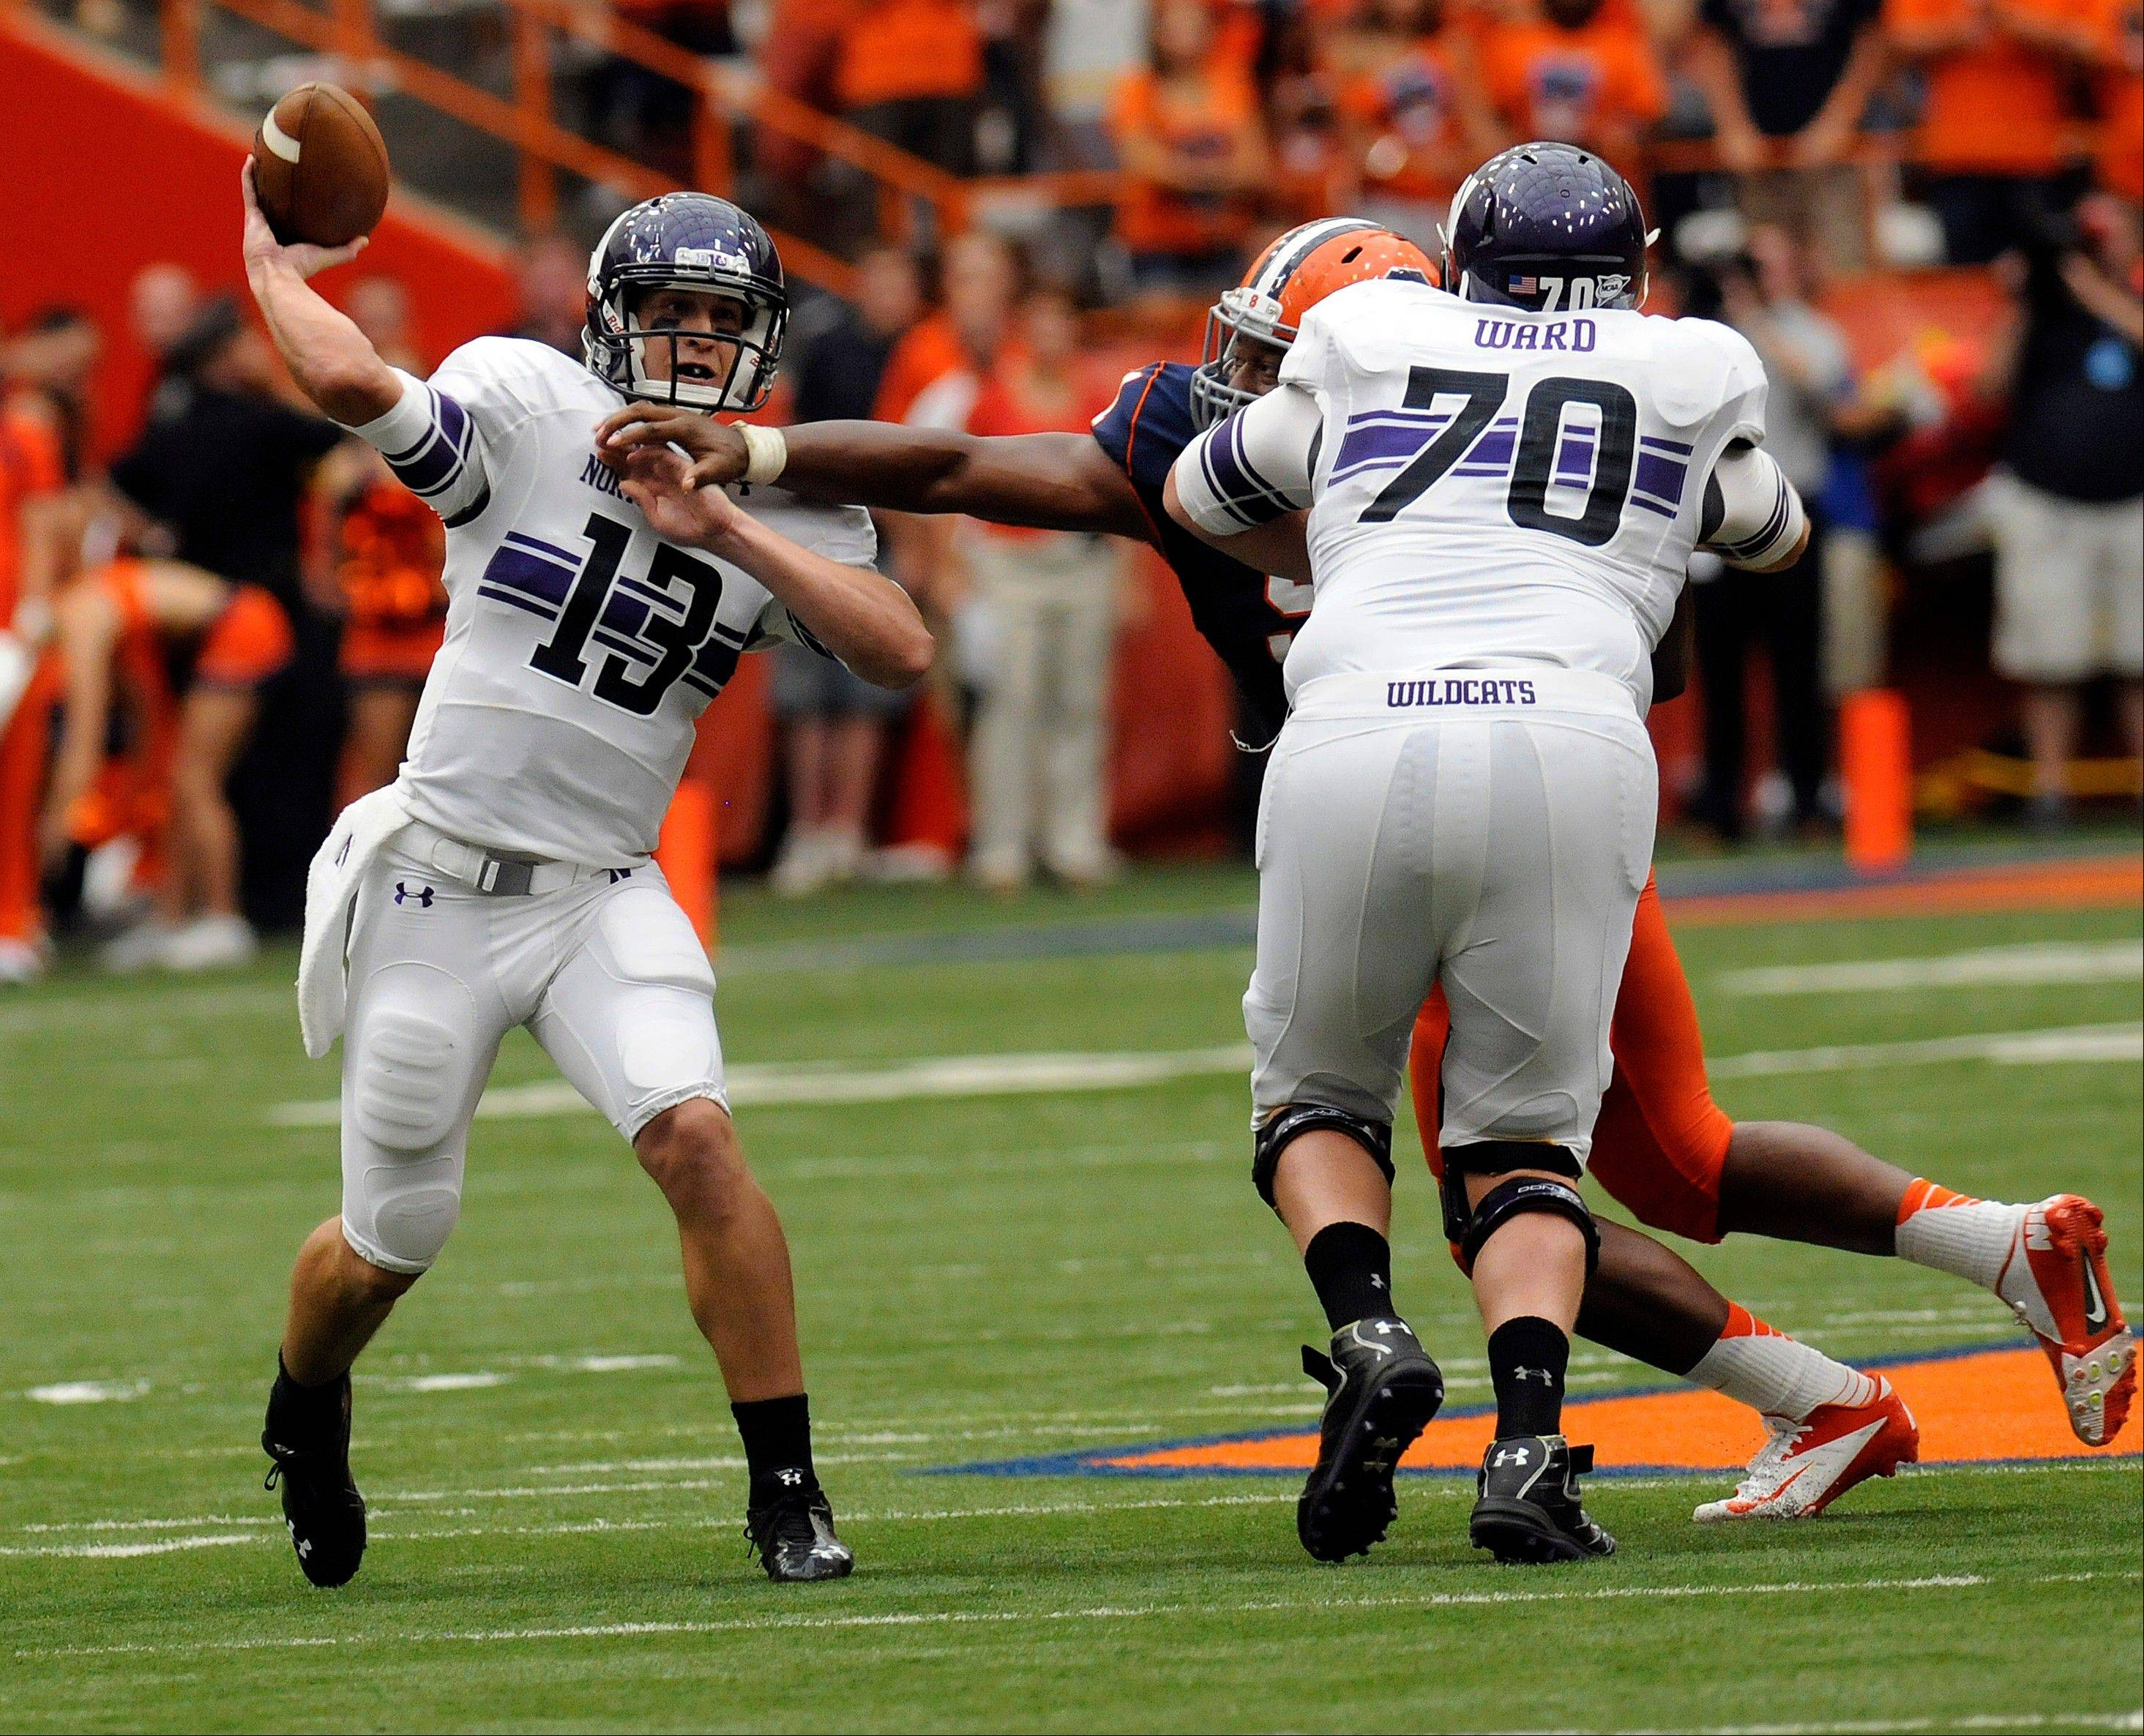 Northwestern backup QB Trevor Siemian throws a game-tying, 9-yard touchdown with 44 seconds left against host Syracuse on Saturday. Demetrius Fields made the catch and the Wildcats won 42-41 when the extra point was good.